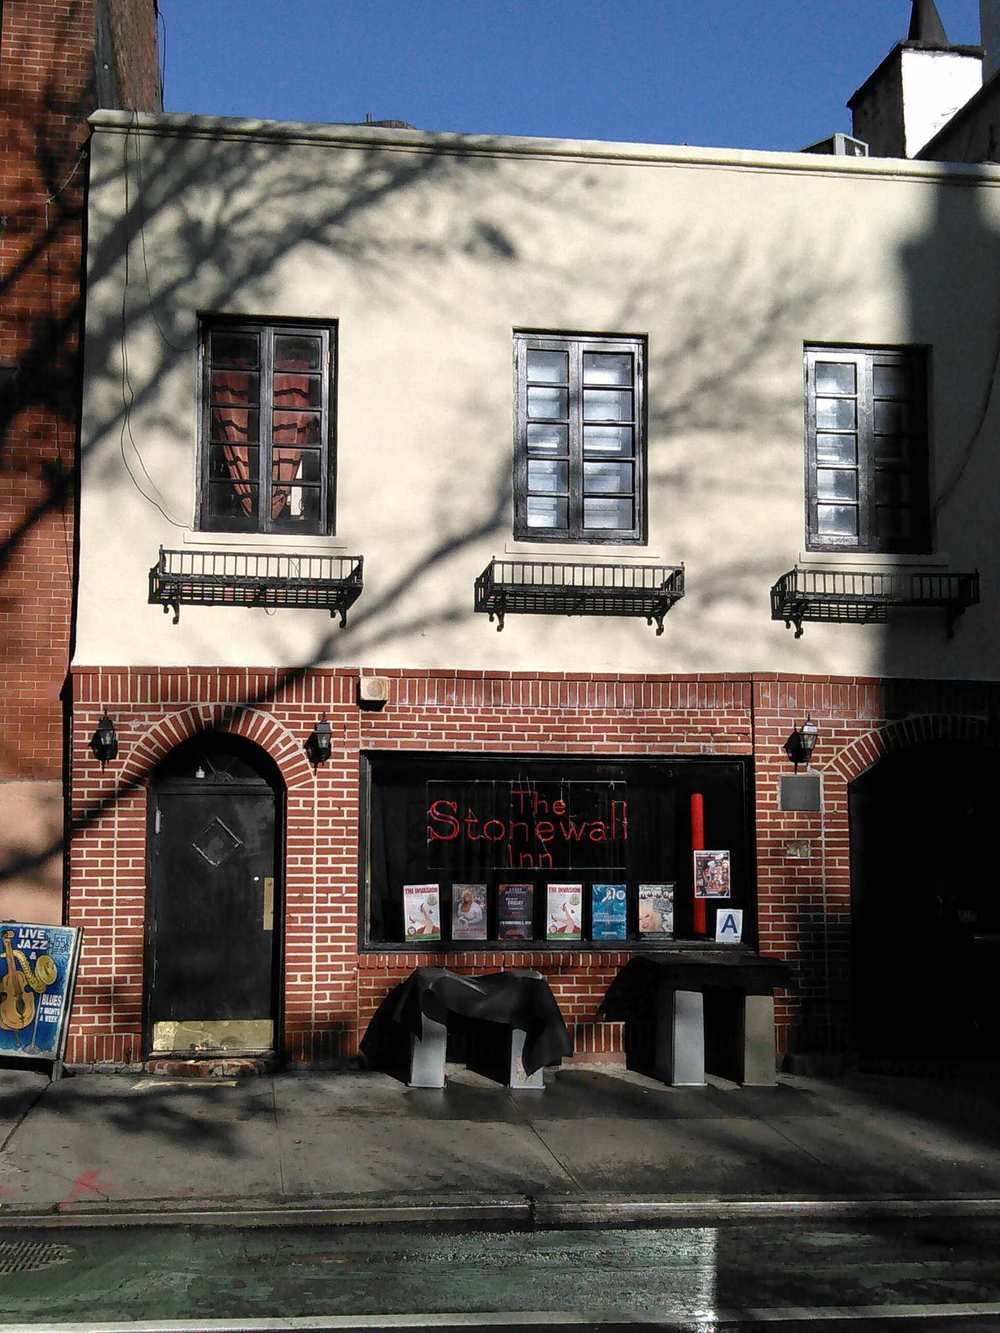 The famous Stonewall Inn,  sans  scaffolding once again.